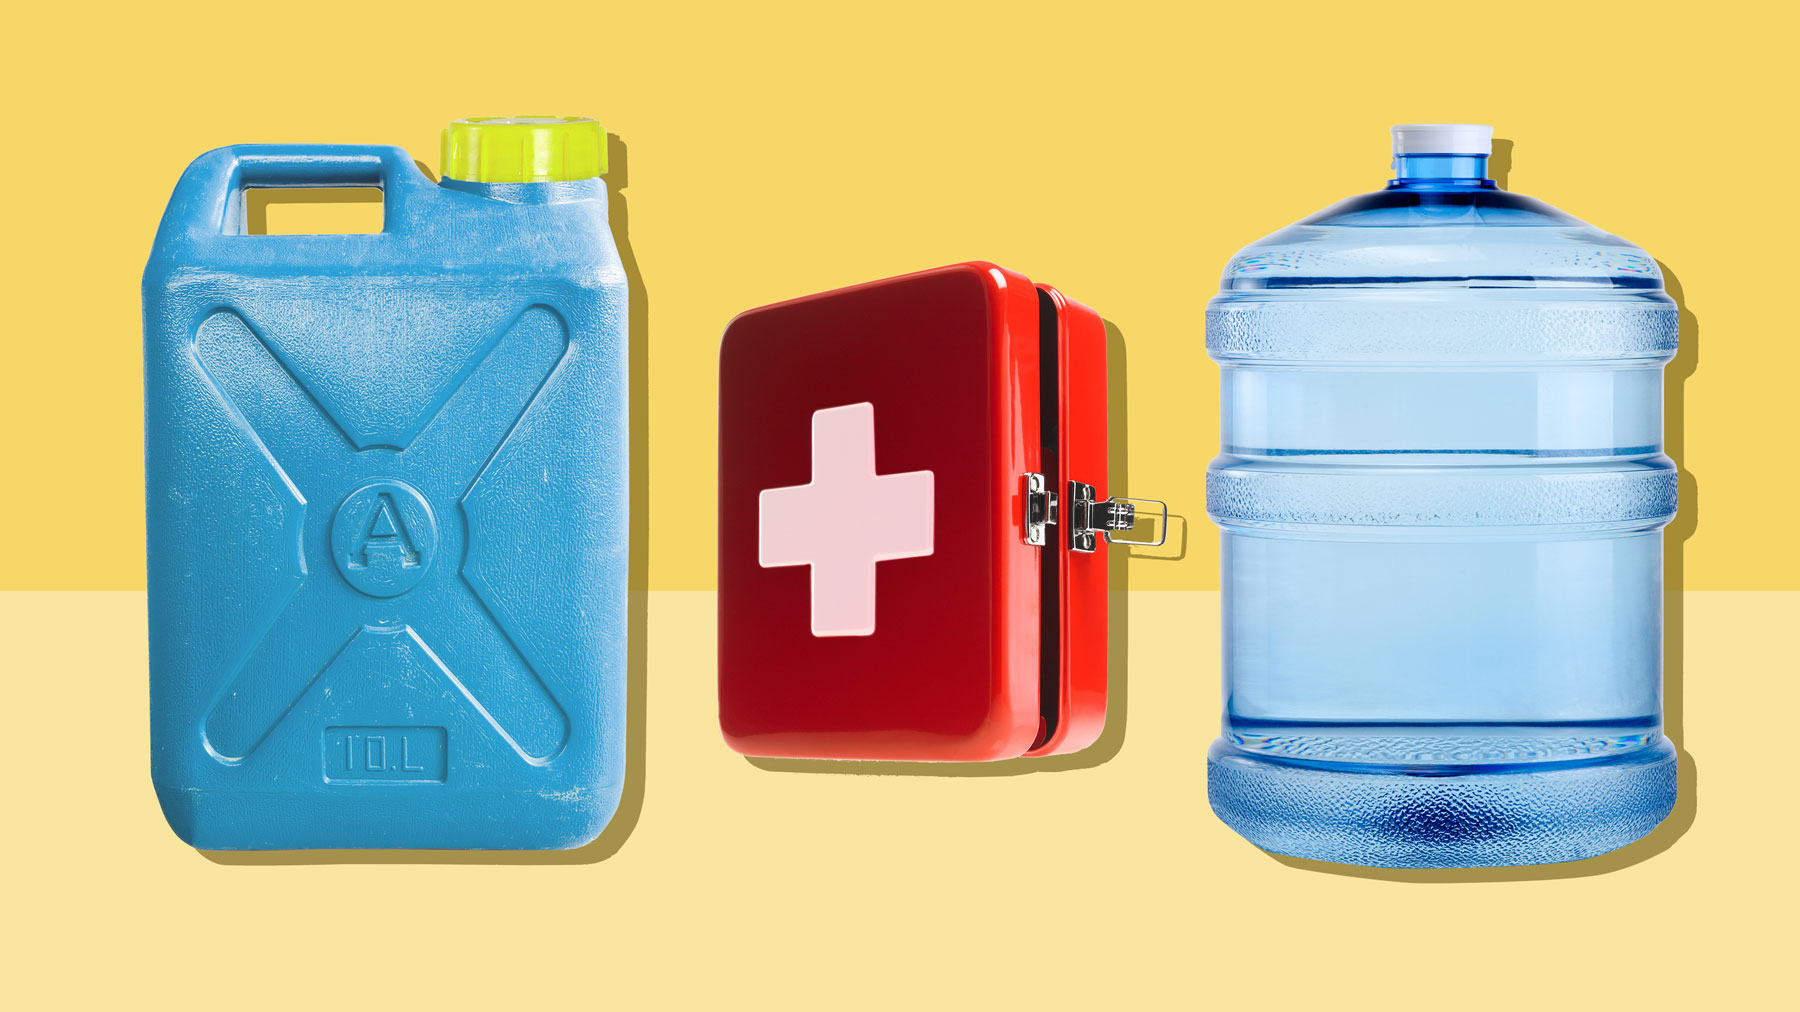 Preparing for emergencies: Small steps and habits to prepare for a natural disaster